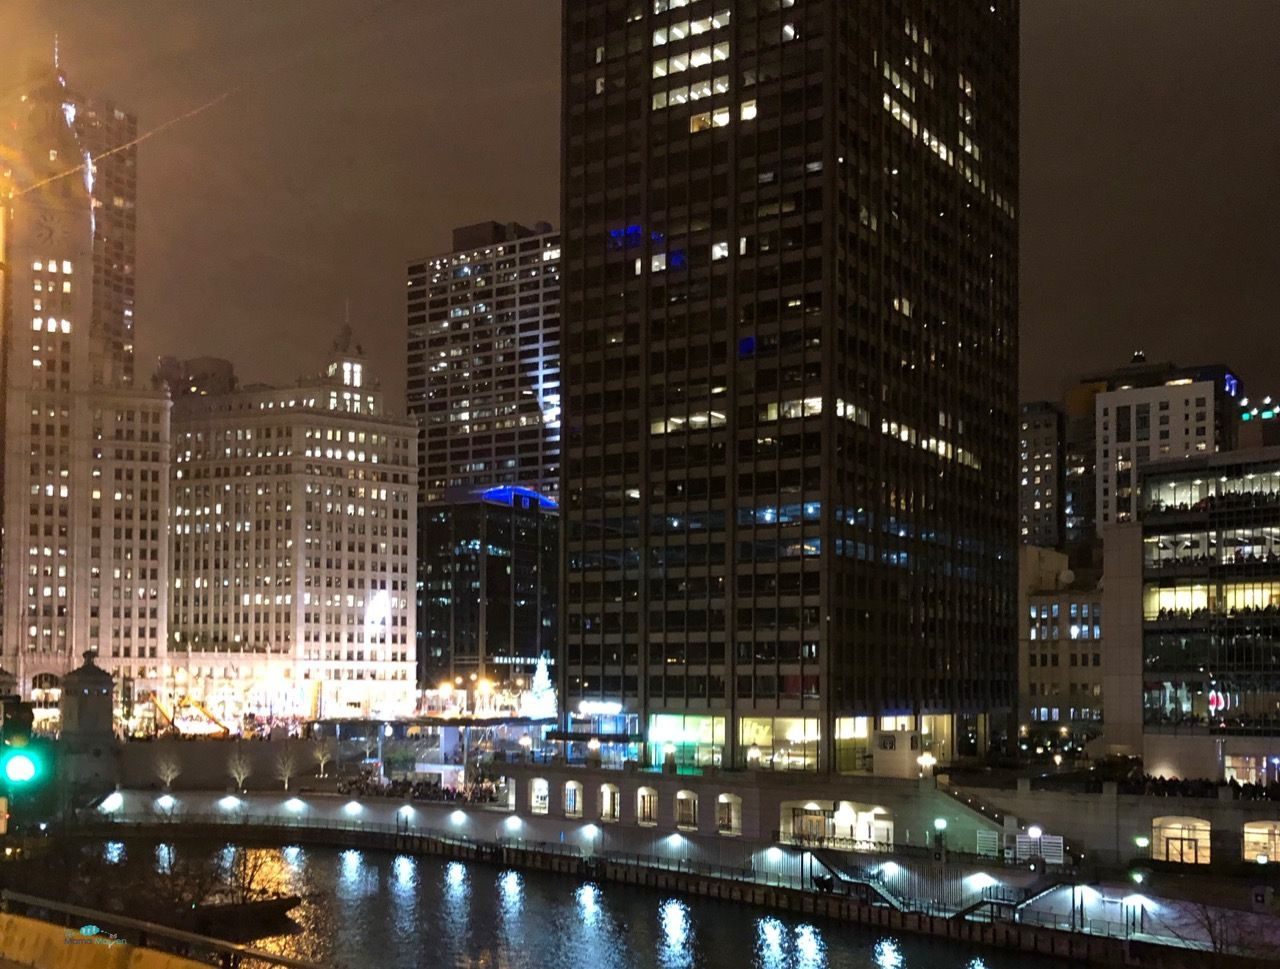 10 fun things to do with kids in chicago during the holiday season rh pinterest com fun things to do in chicago as a couple fun things to do in chicago as a couple